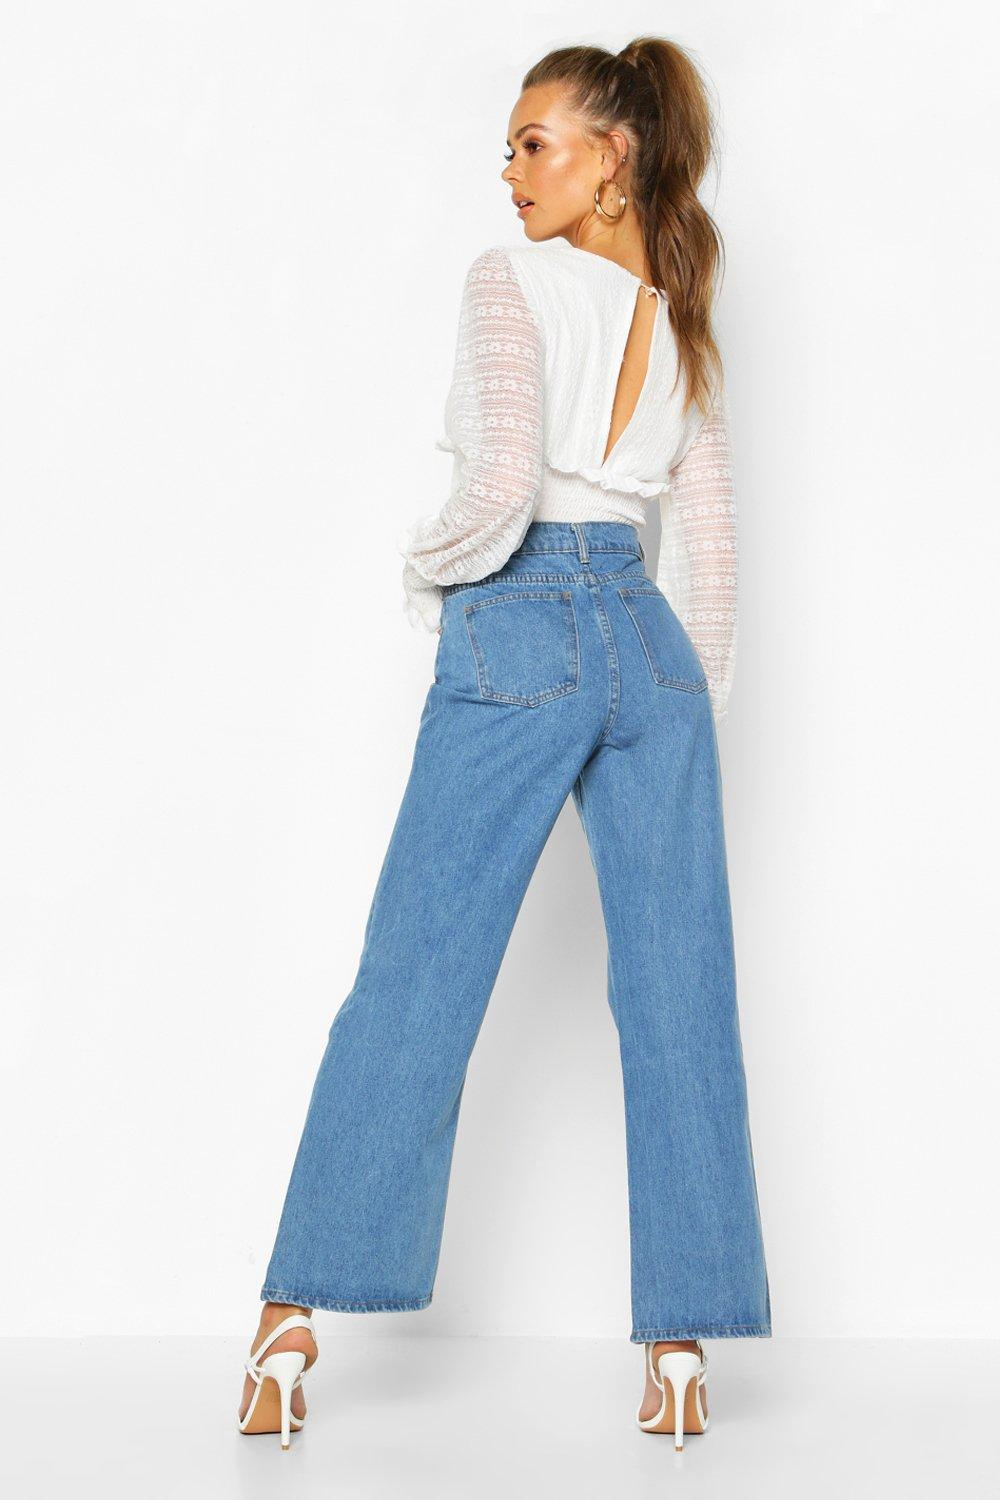 Leg mid Jeans Stonewashed blue Wide Rigid vvxIwrqEt